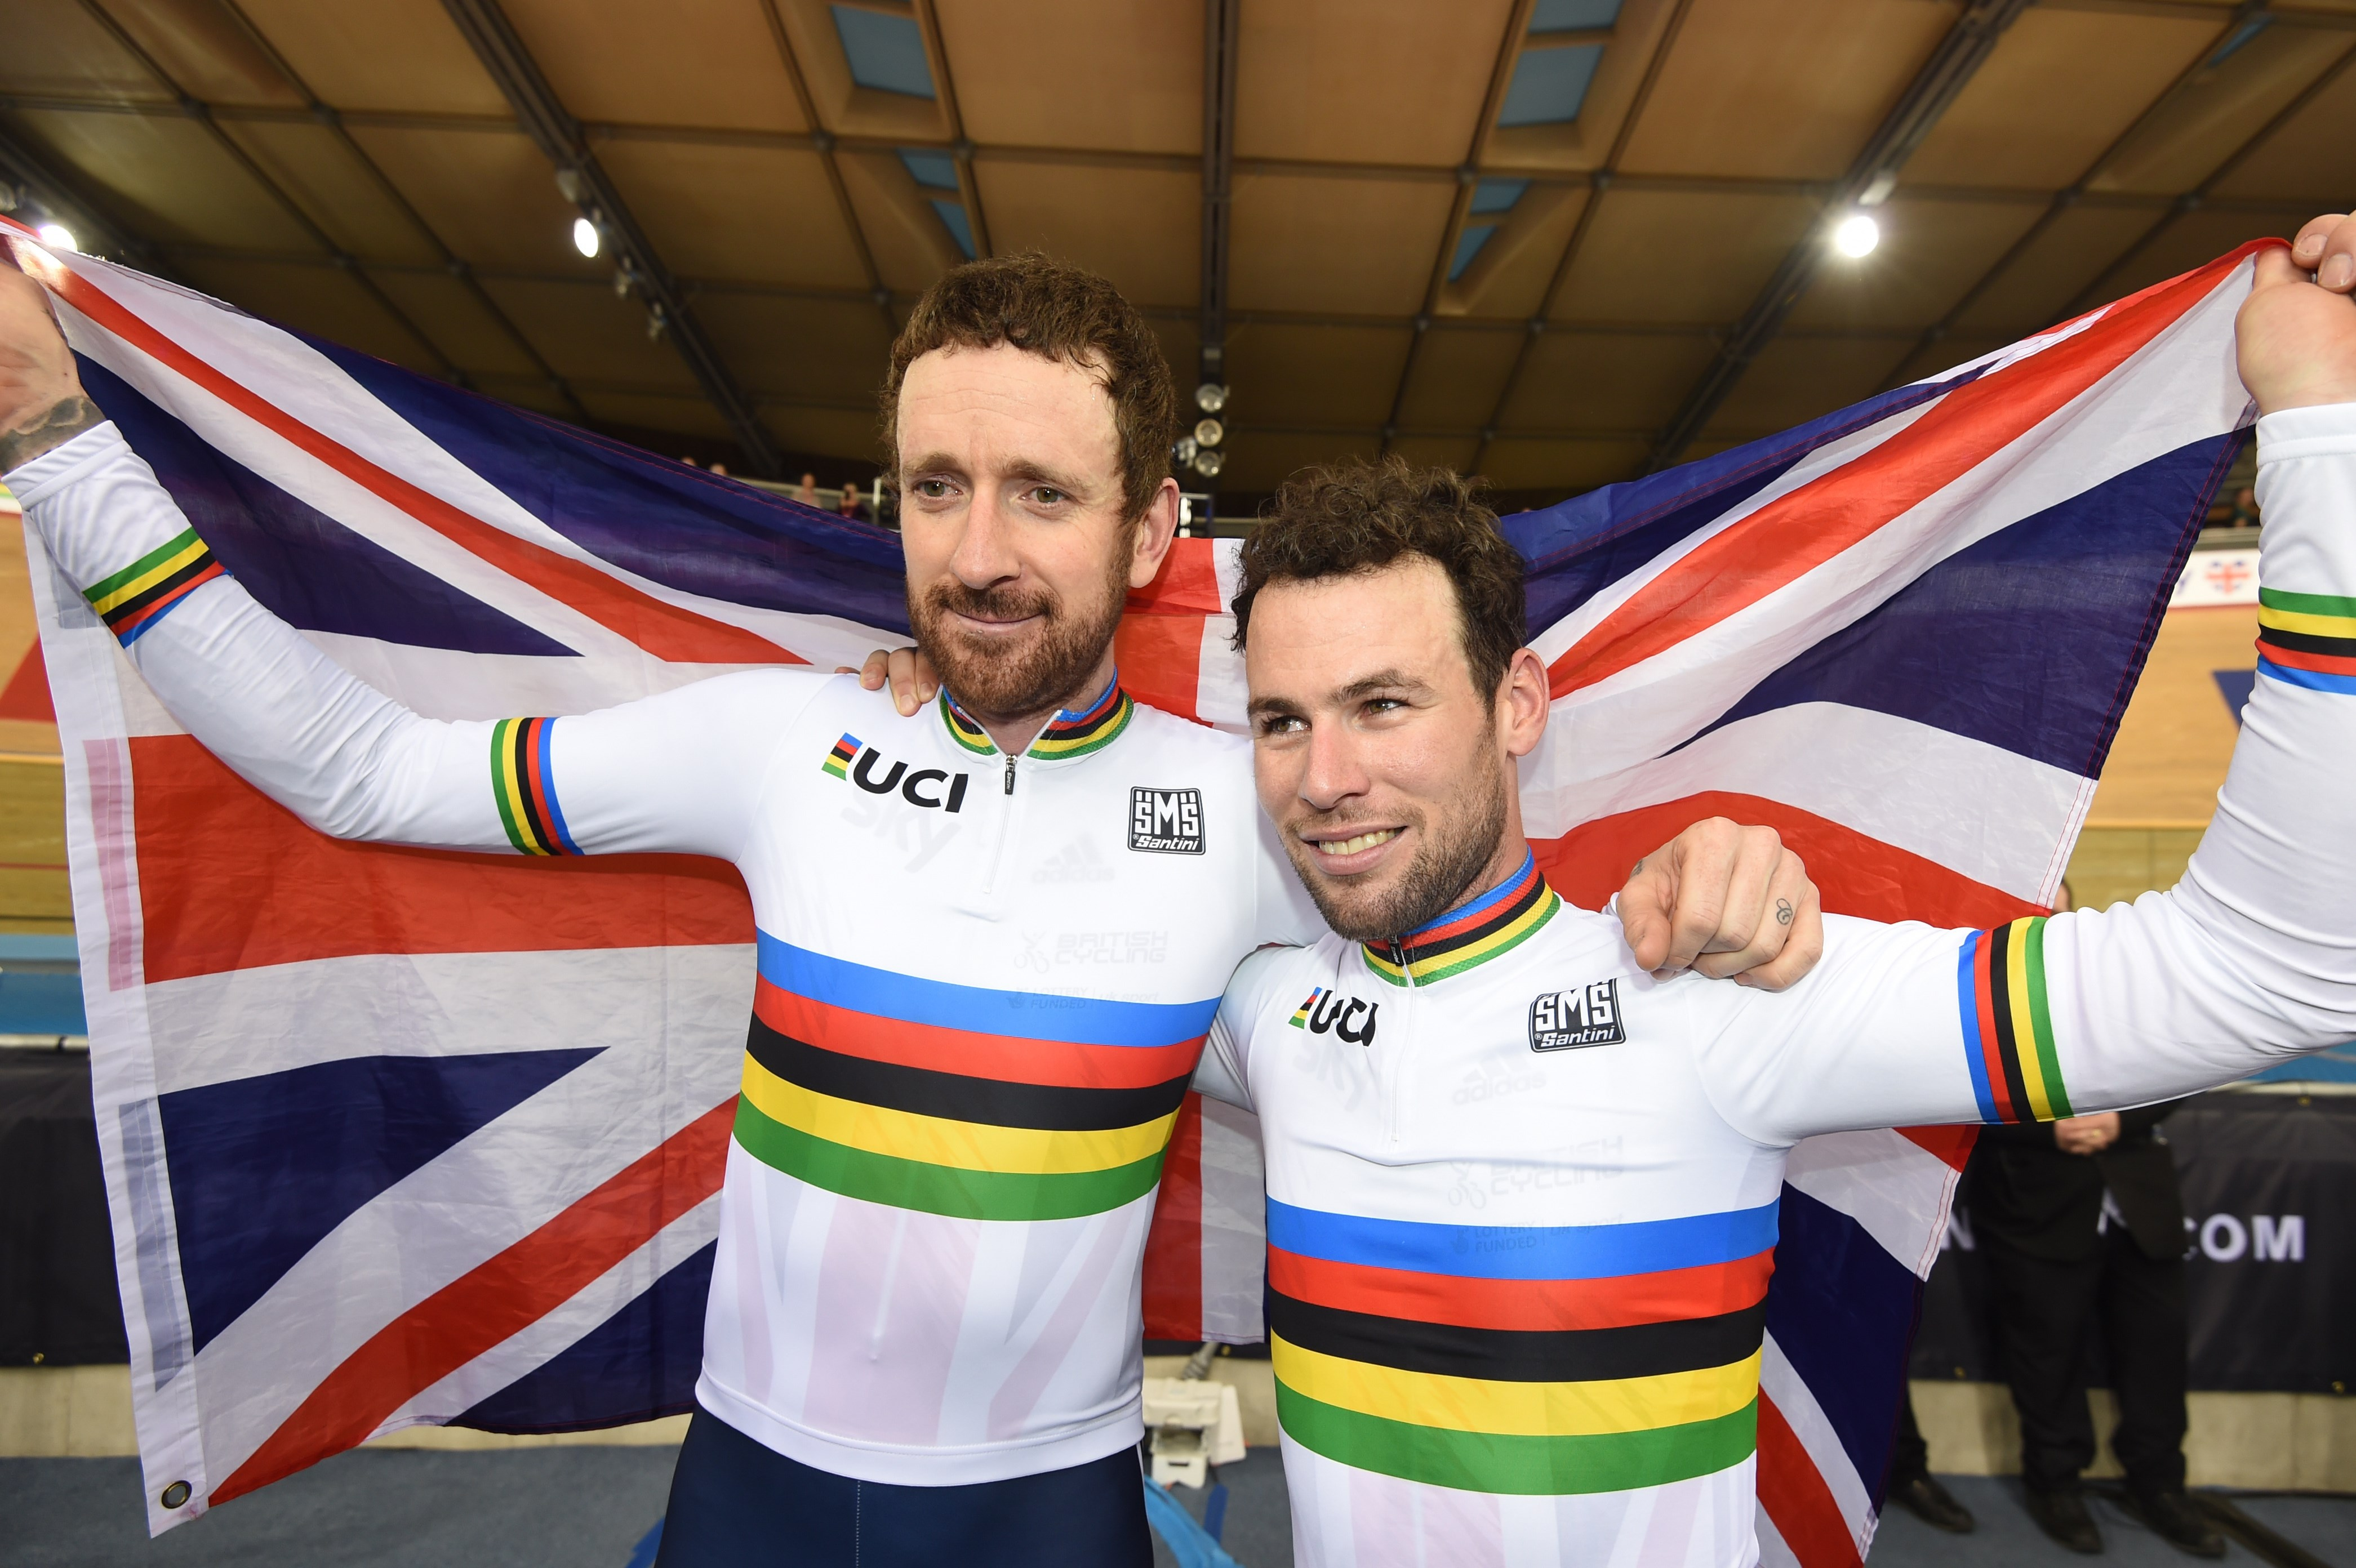 FILE - In this March 6, 2016, file photo, Britain's Bradley Wiggins and Mark Cavendish hold up a British flag as they pose for photographers with their gold medals after winning the Men's Madison race at the World Track Cycling championships at the Lee Va